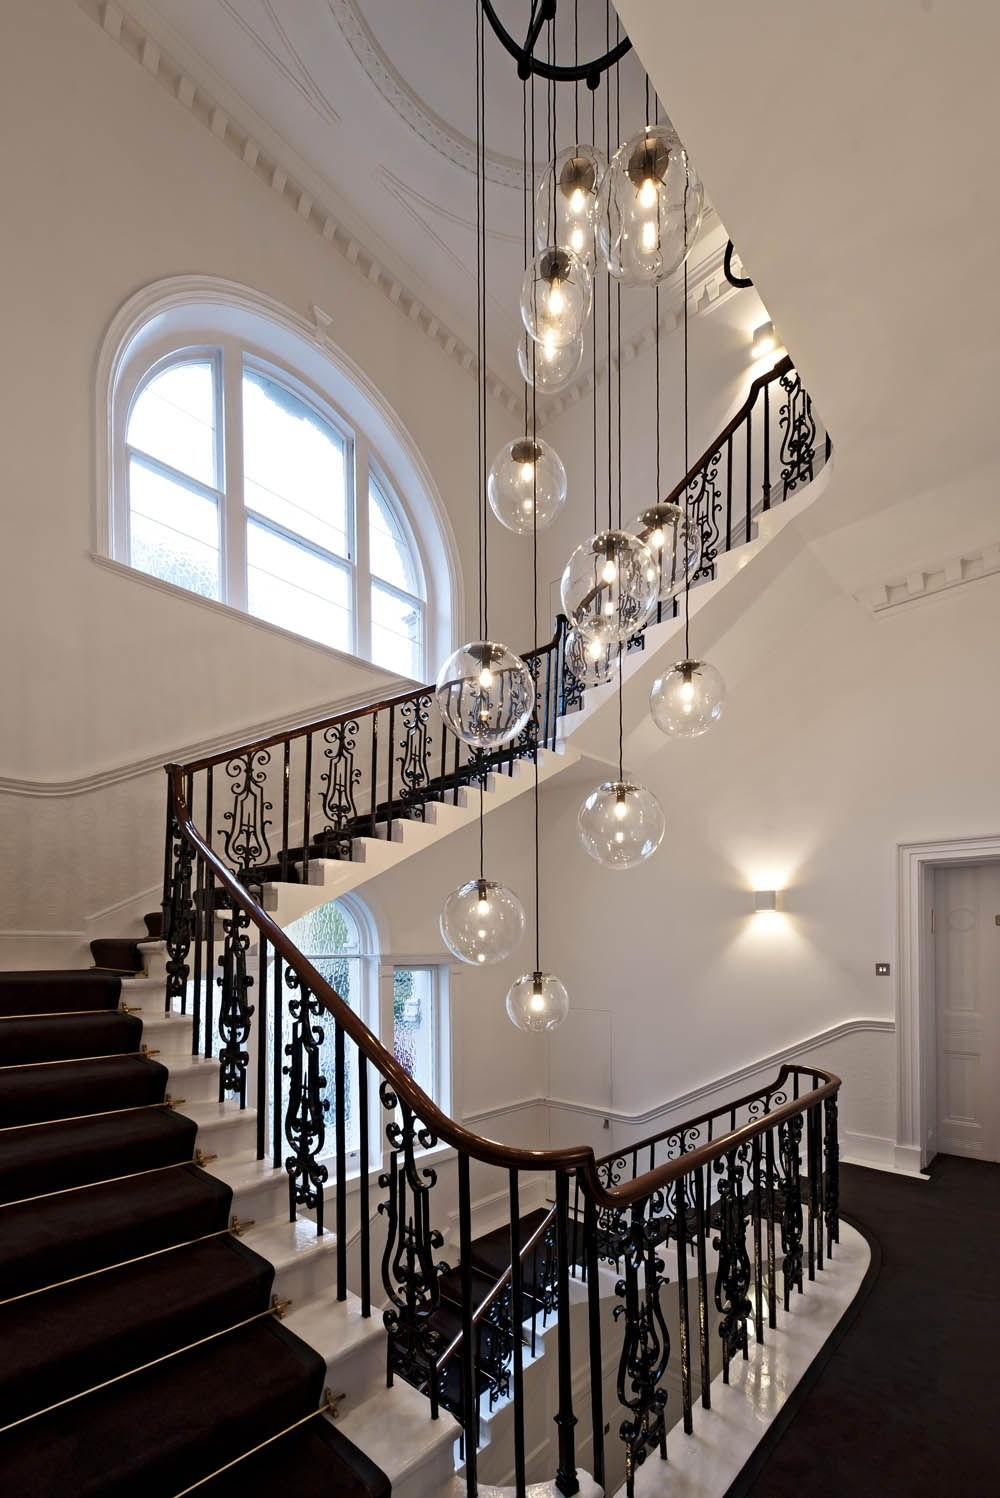 Stairwell Chandelier For Most Recent Offices For International Shipping Company /shh (View 2 of 15)